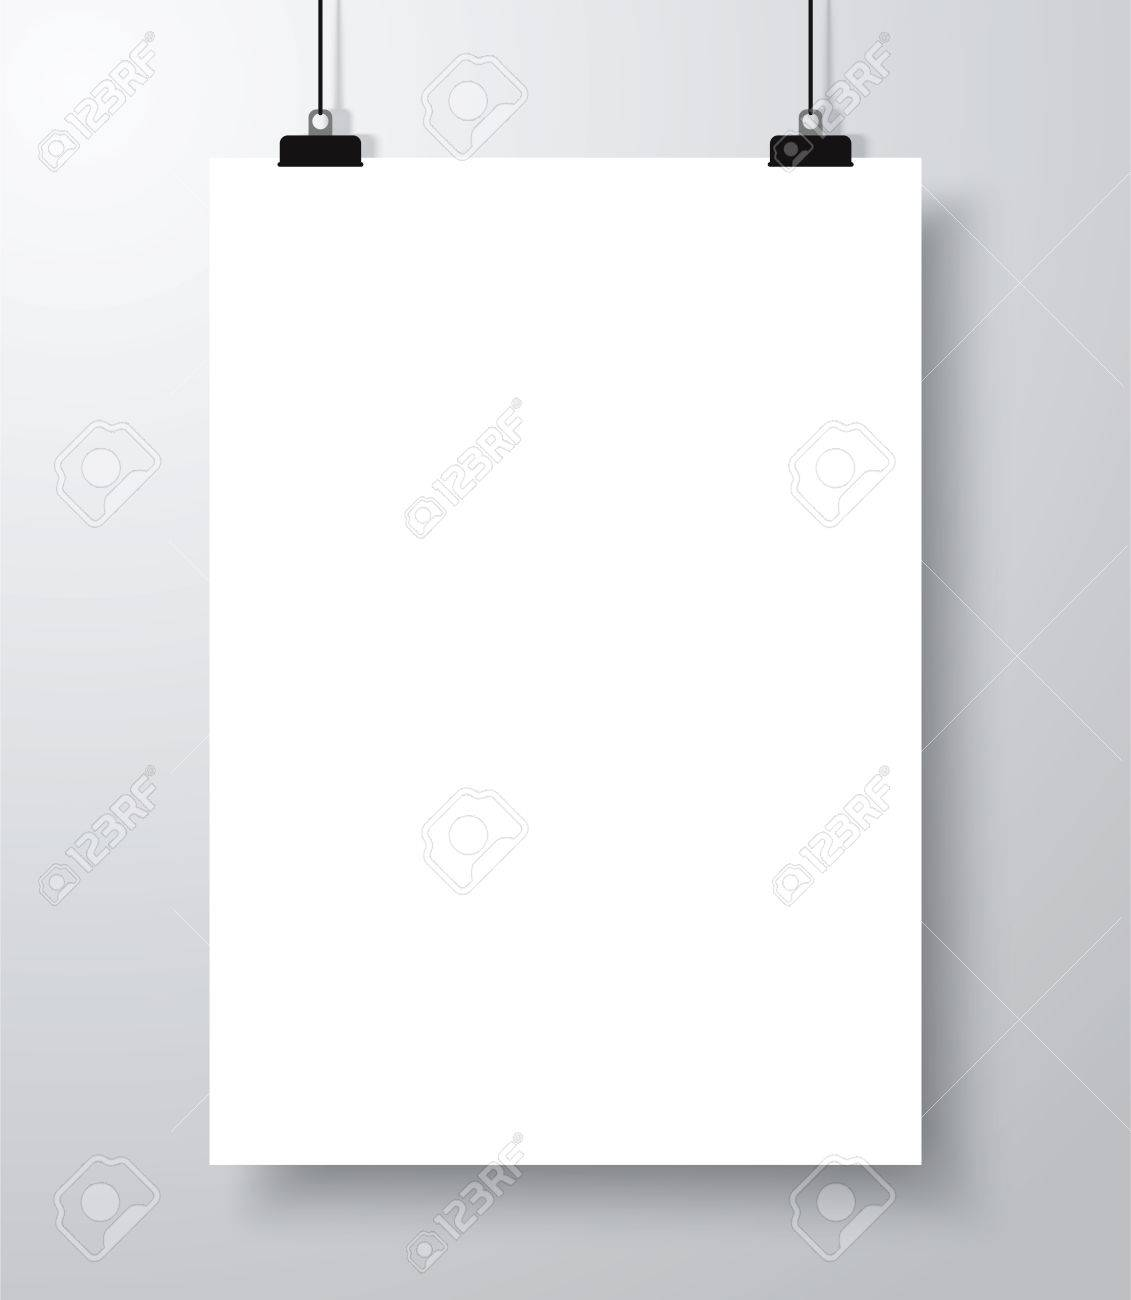 Blank Empty Poster Mockup Template With Shadow. Royalty Free ...